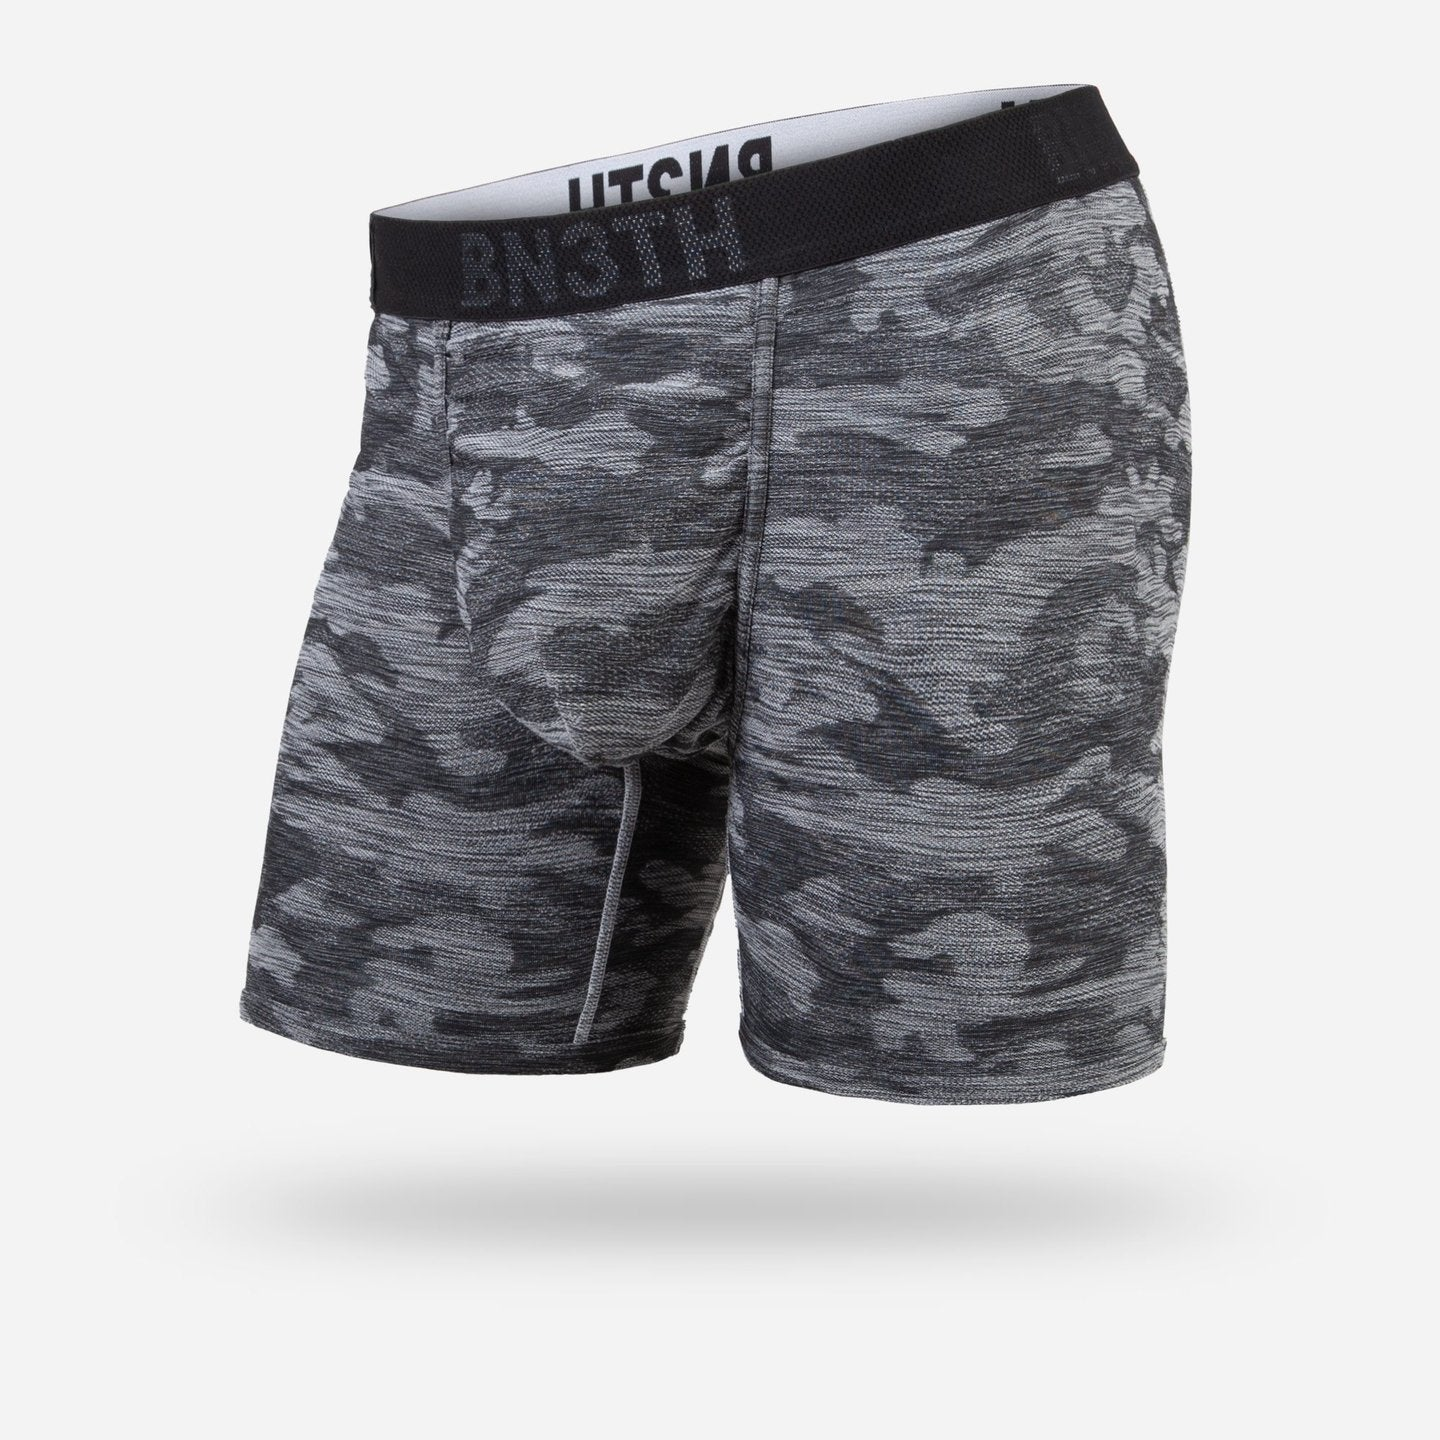 BN3TH Hero Knit boxer brief